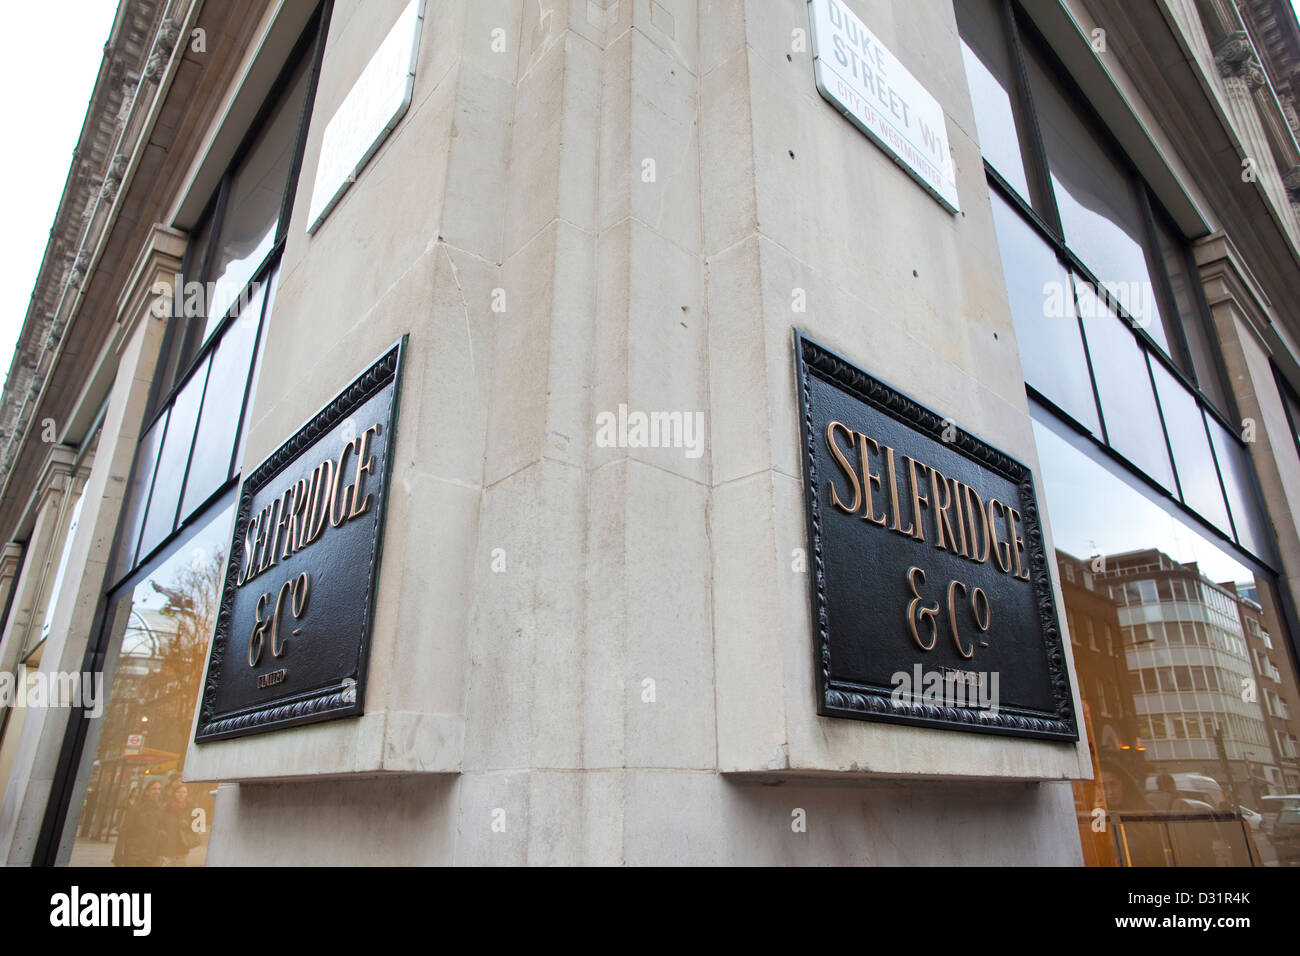 Selfridge Co Department Store In Stock Photos & Selfridge Co ...